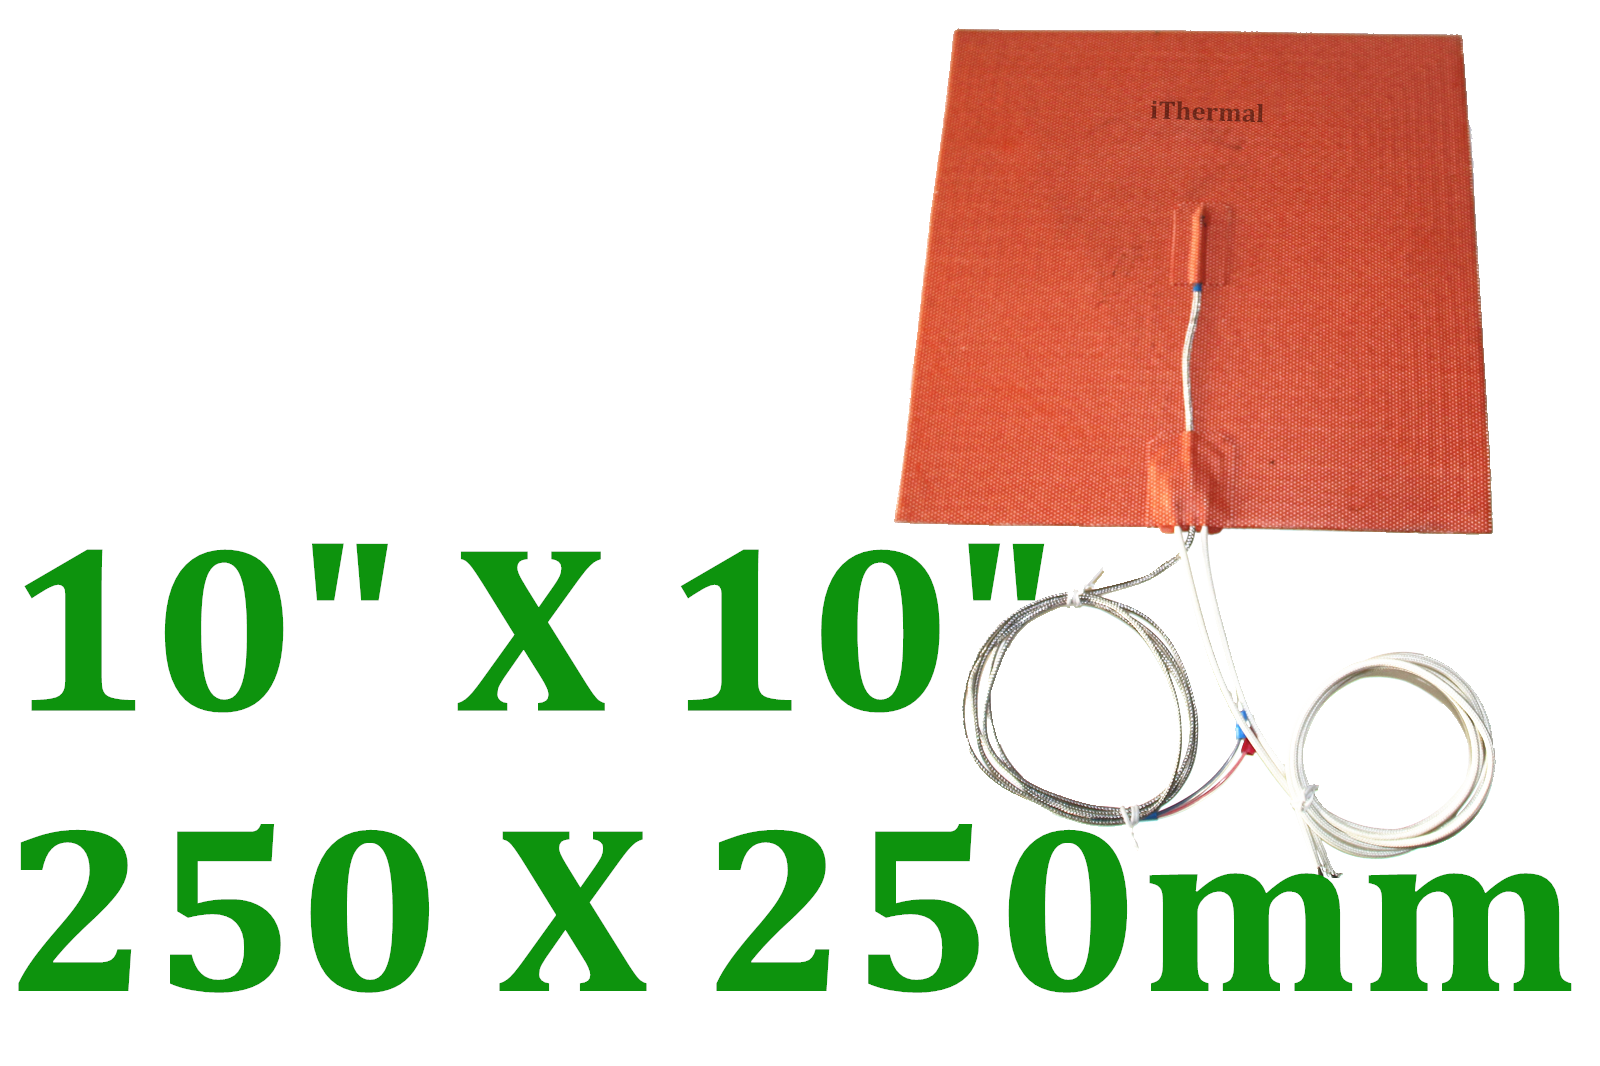 "10"" X 10"" 250 X 250mm 24V 300W w/ 3M w/ K type Thermocouple in Middle CE UL Pad"